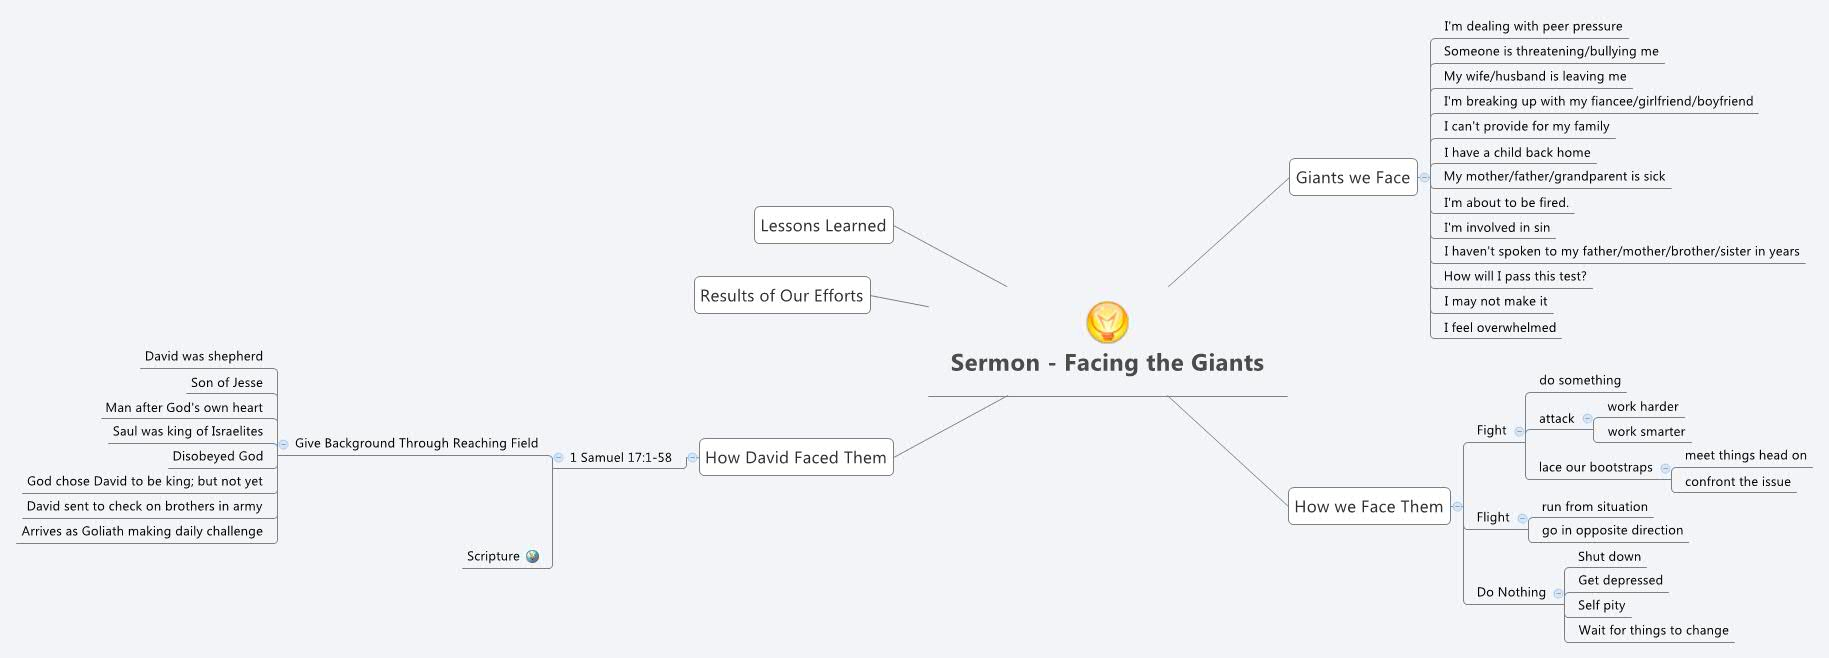 Sermon - Facing the Giants - XMind - Mind Mapping Software